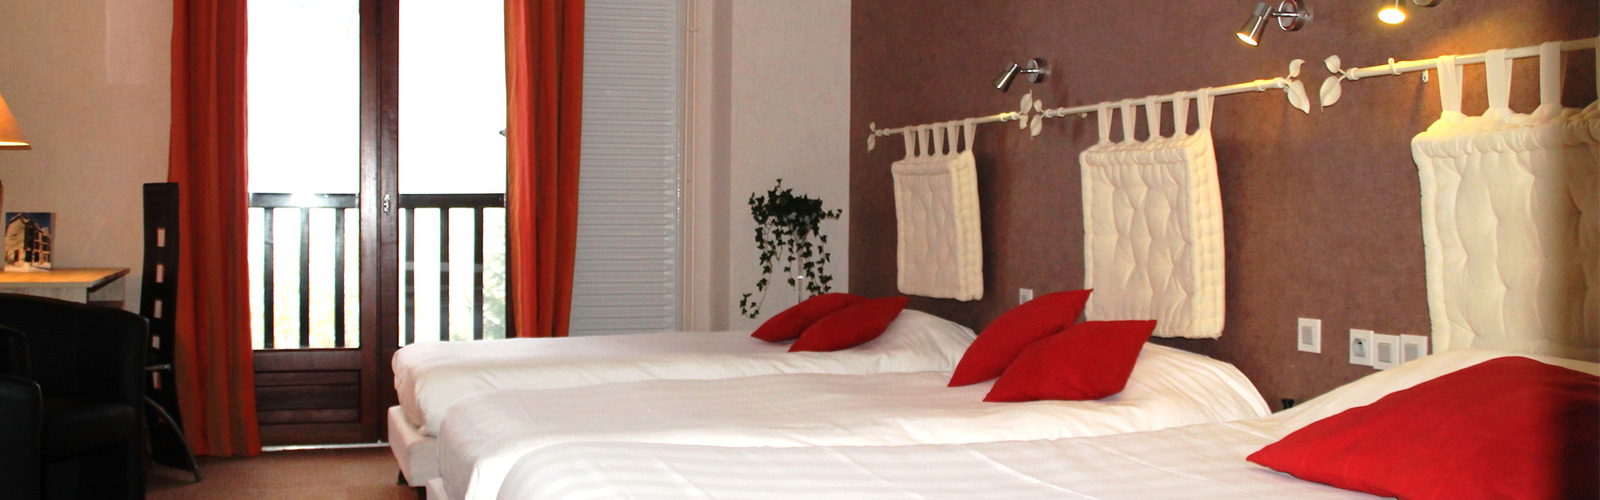 Chambres hotel st jacques des blats Cantal Lioran